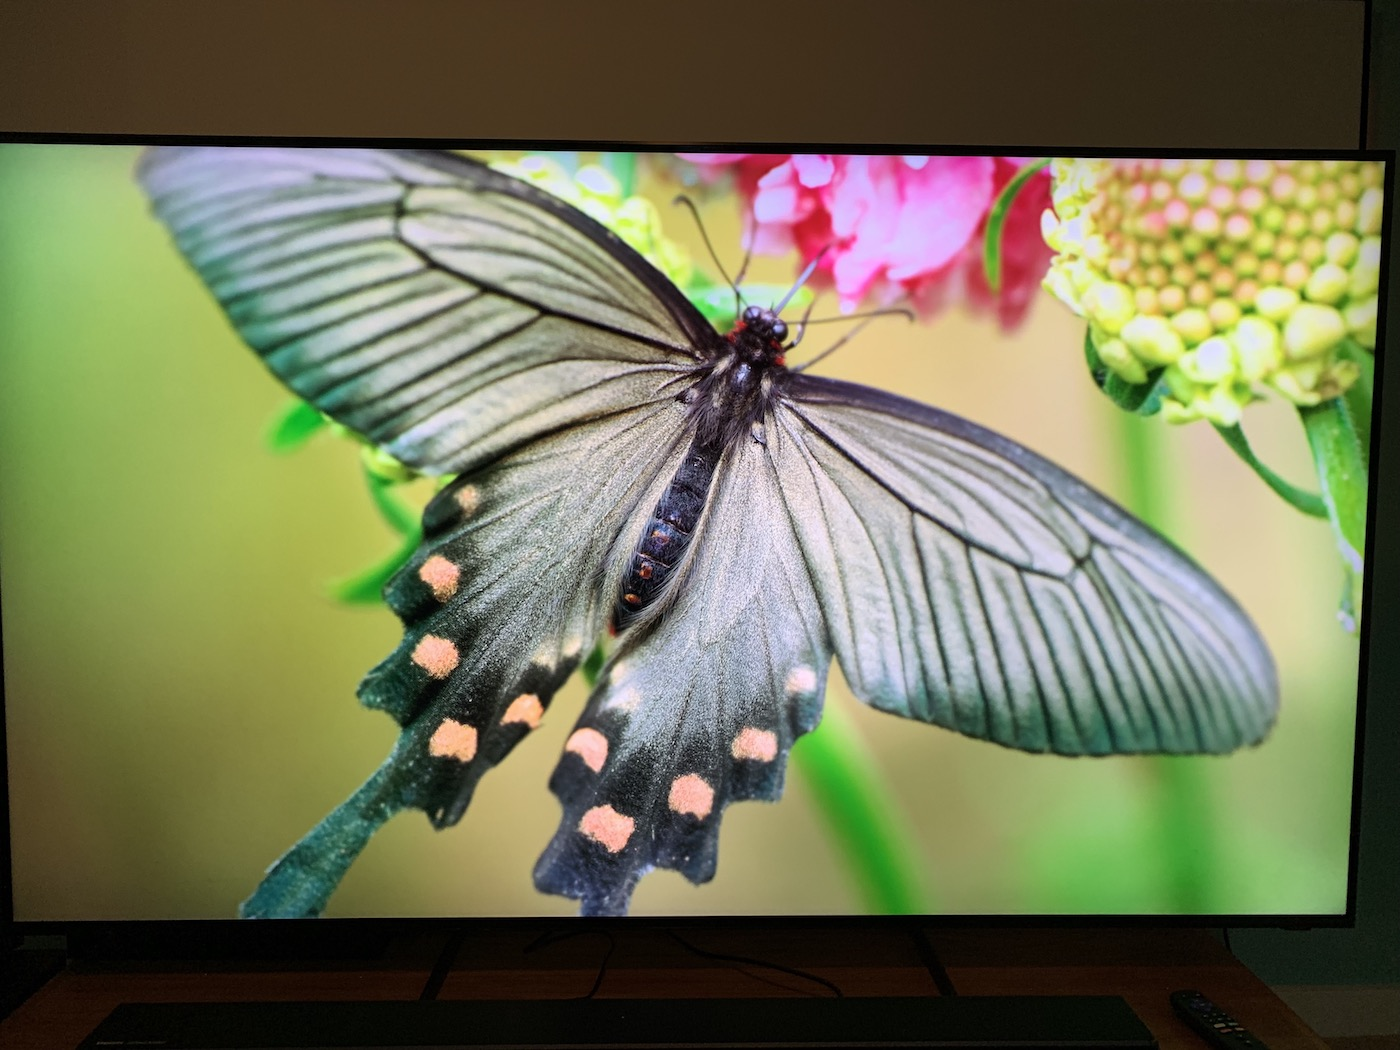 Review of the Samsung QLED Q900R 8K TV | Best Buy Blog